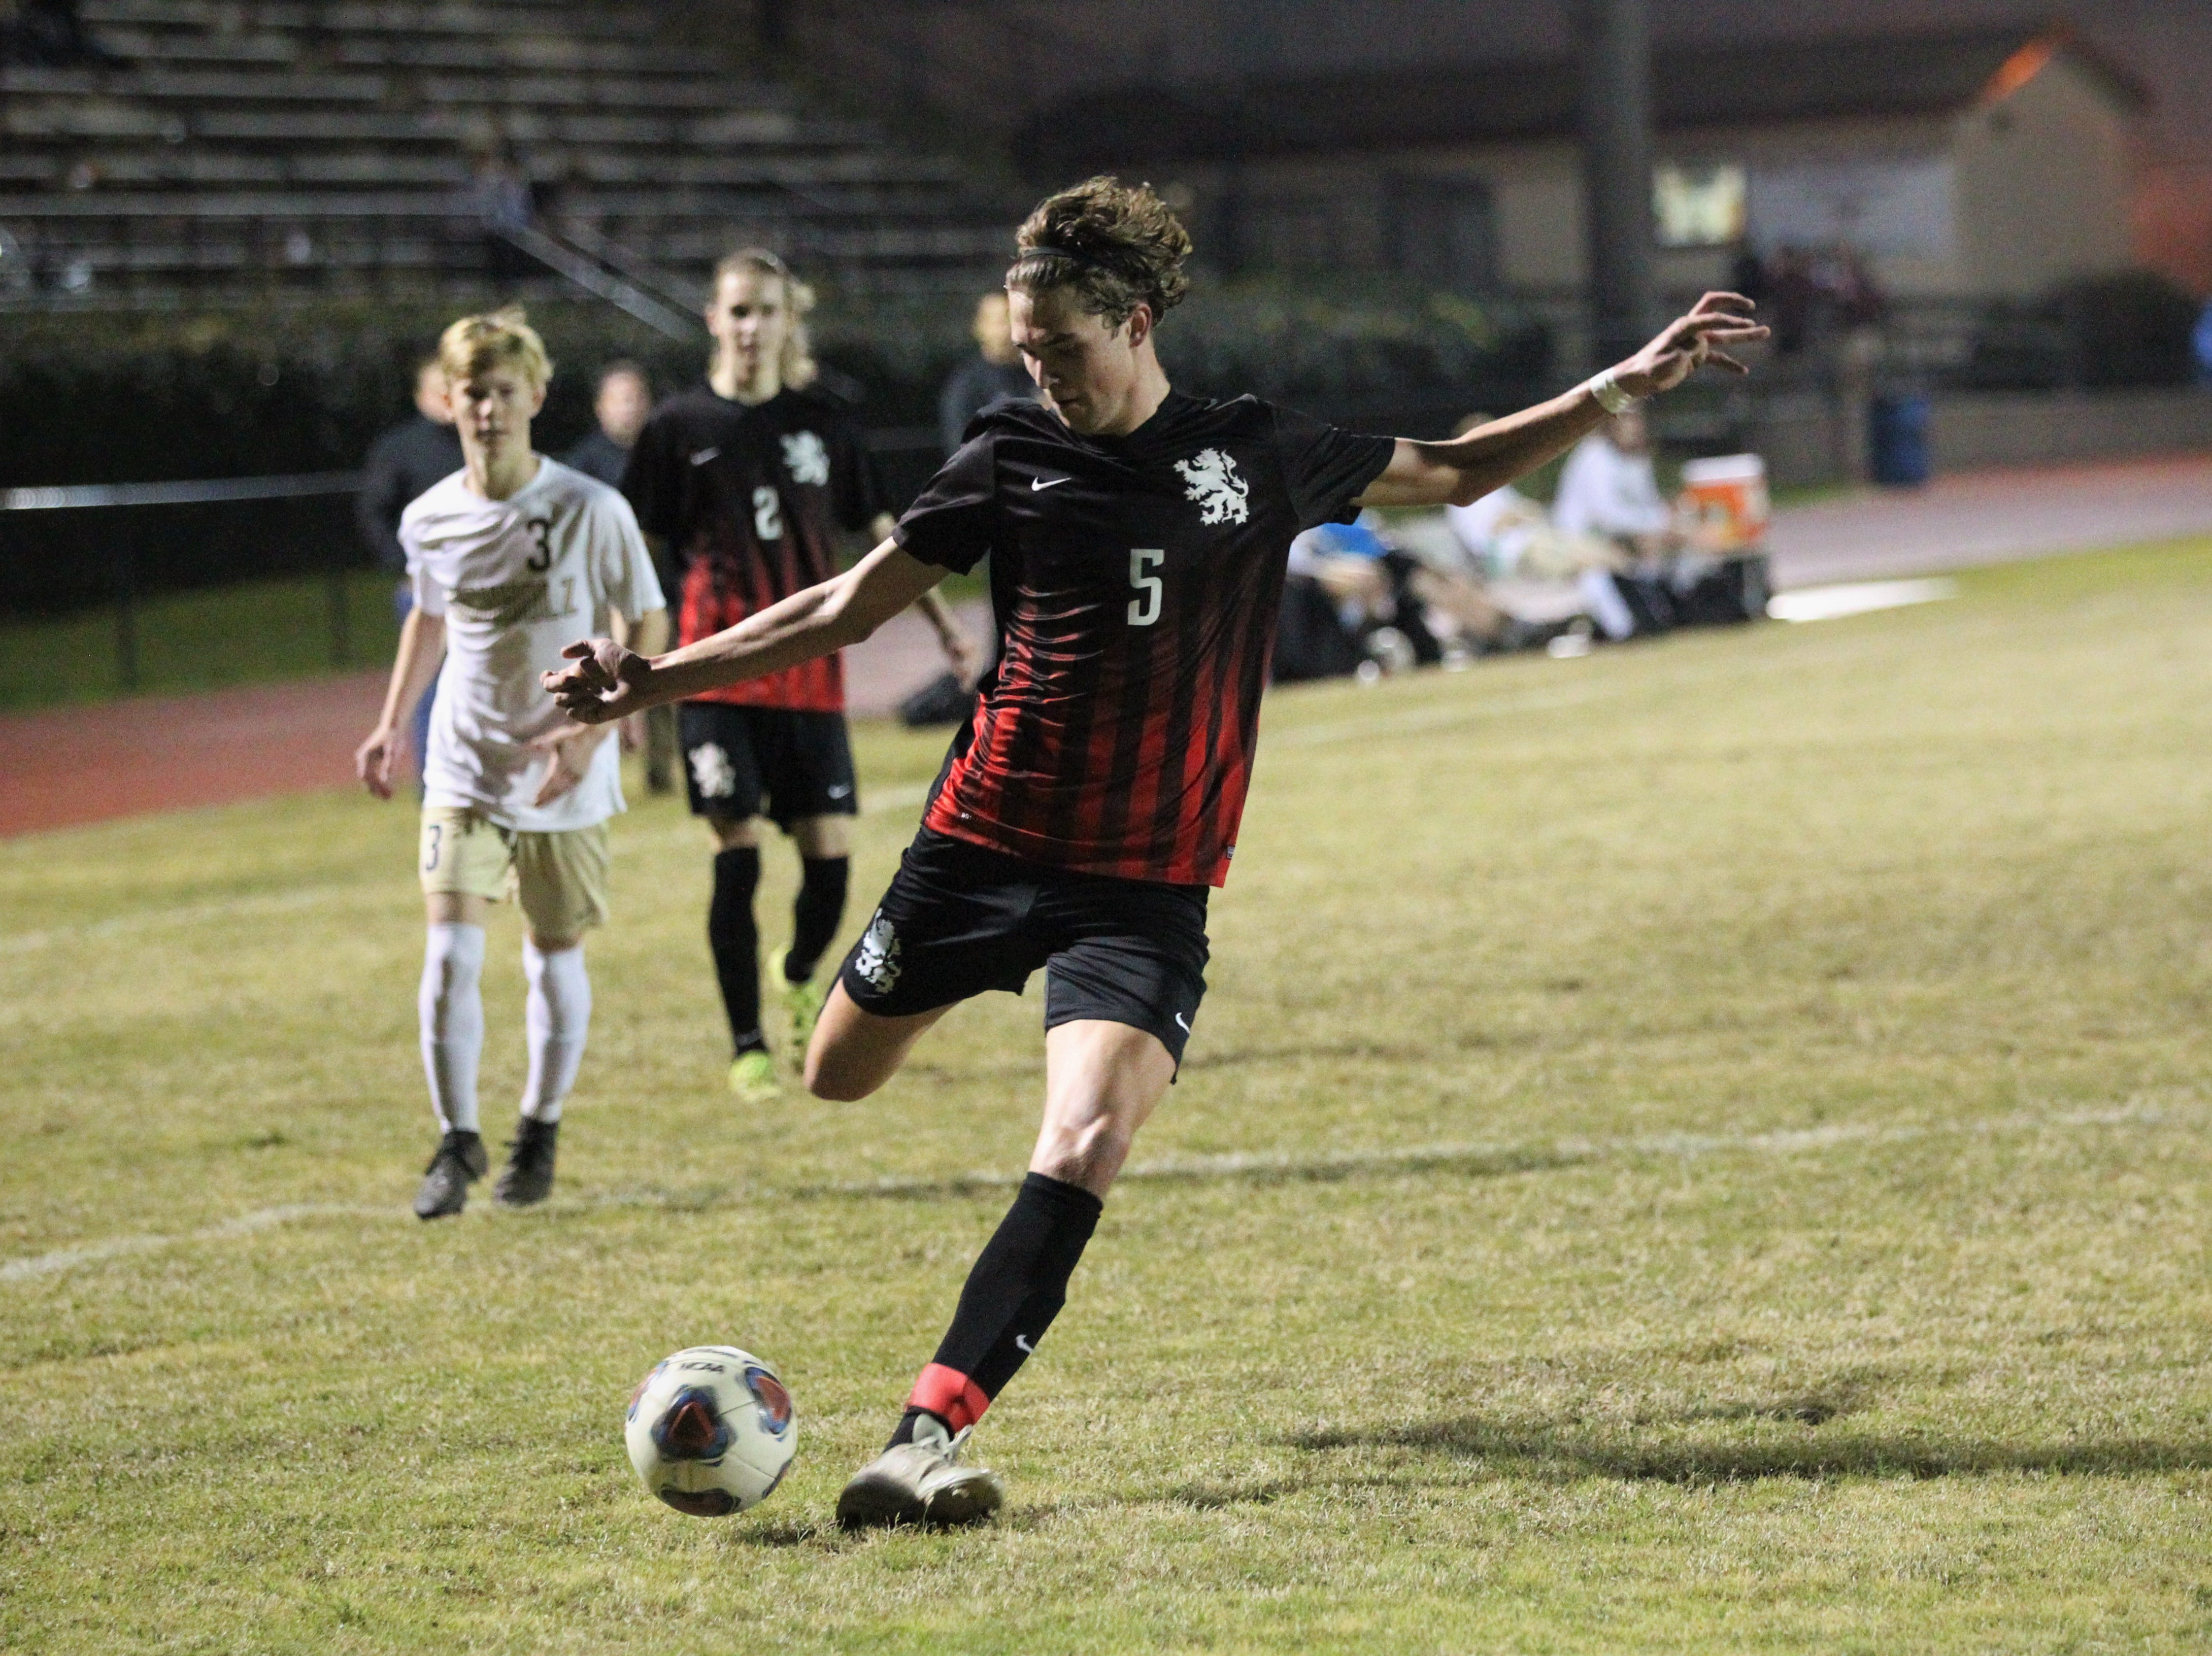 Leon's Collins Proctor takes as hot on goal as Leon beat Gainesville Buchholz 5-2 on Jan. 18, 2019 to improve to 18-0-1 while being ranked No. 1 nationally.